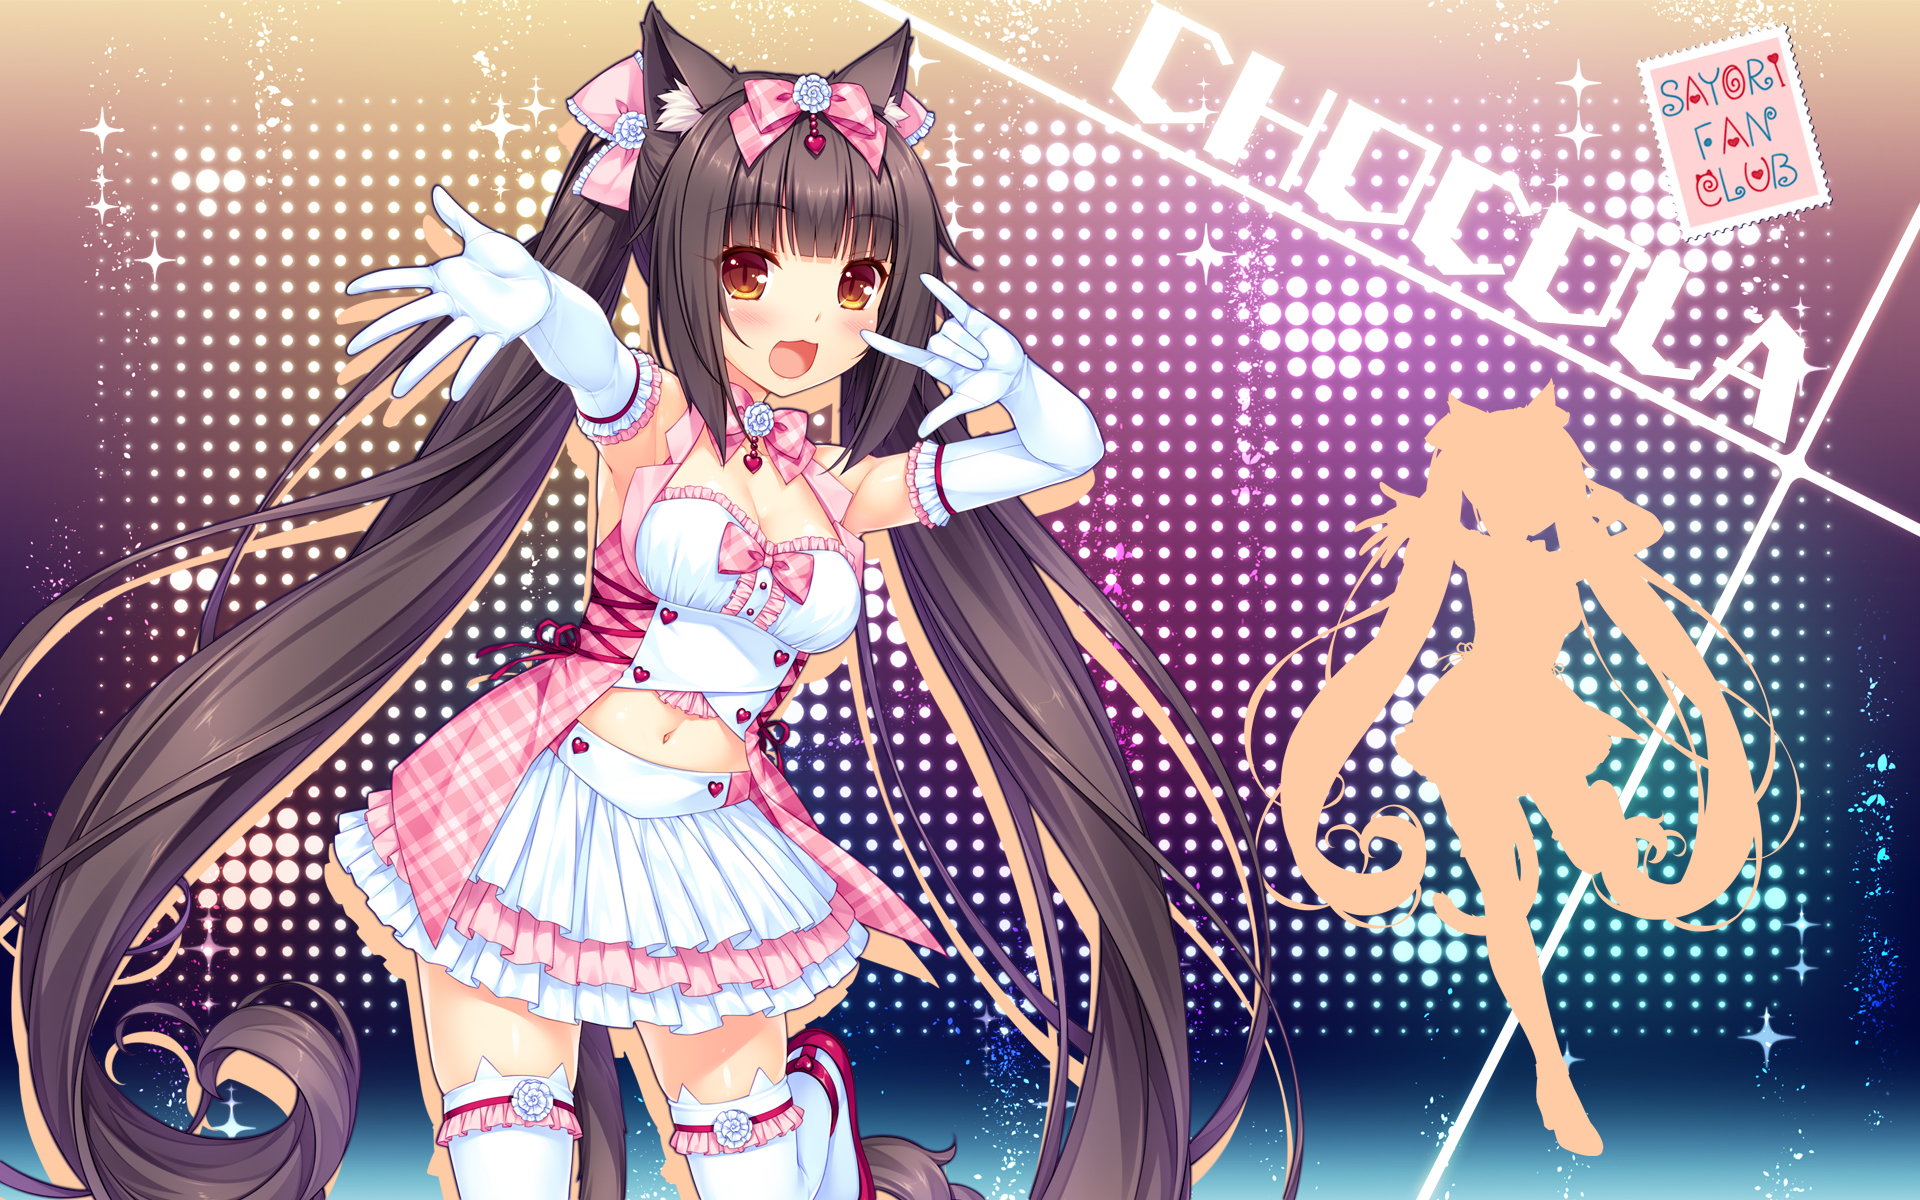 yande.re 405908 animal_ears chocolat cleavage heels neko_para nekomimi sayori silhouette tail thighhighs wallpaper.jpg